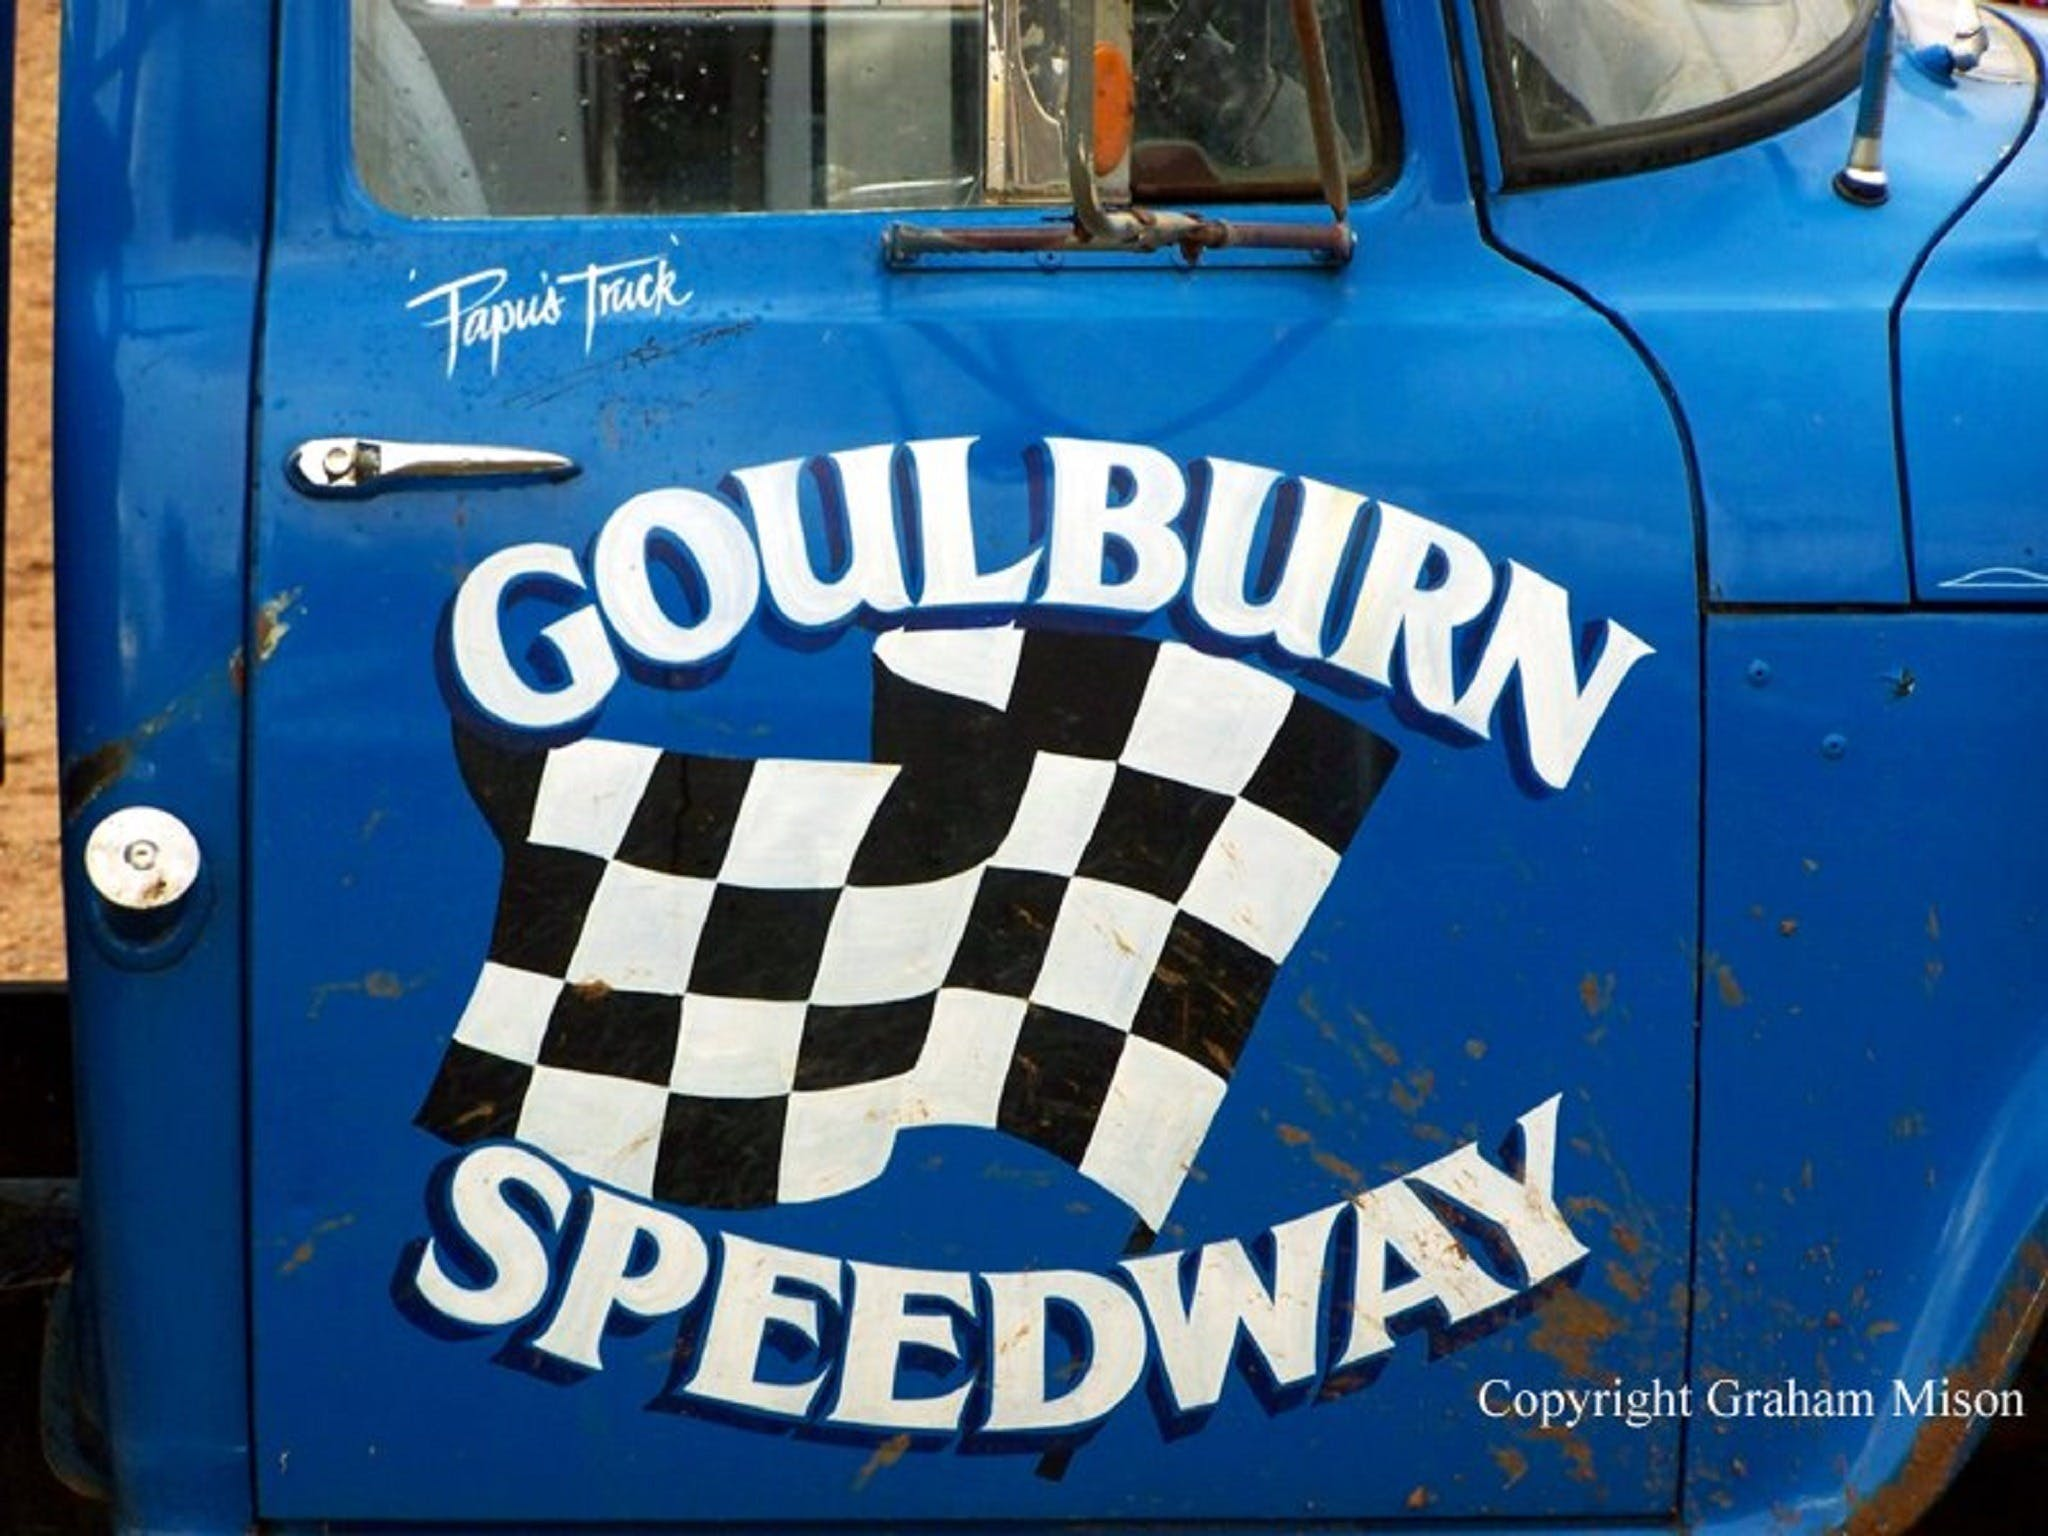 50 years of racing at Goulburn Speedway - Surfers Gold Coast